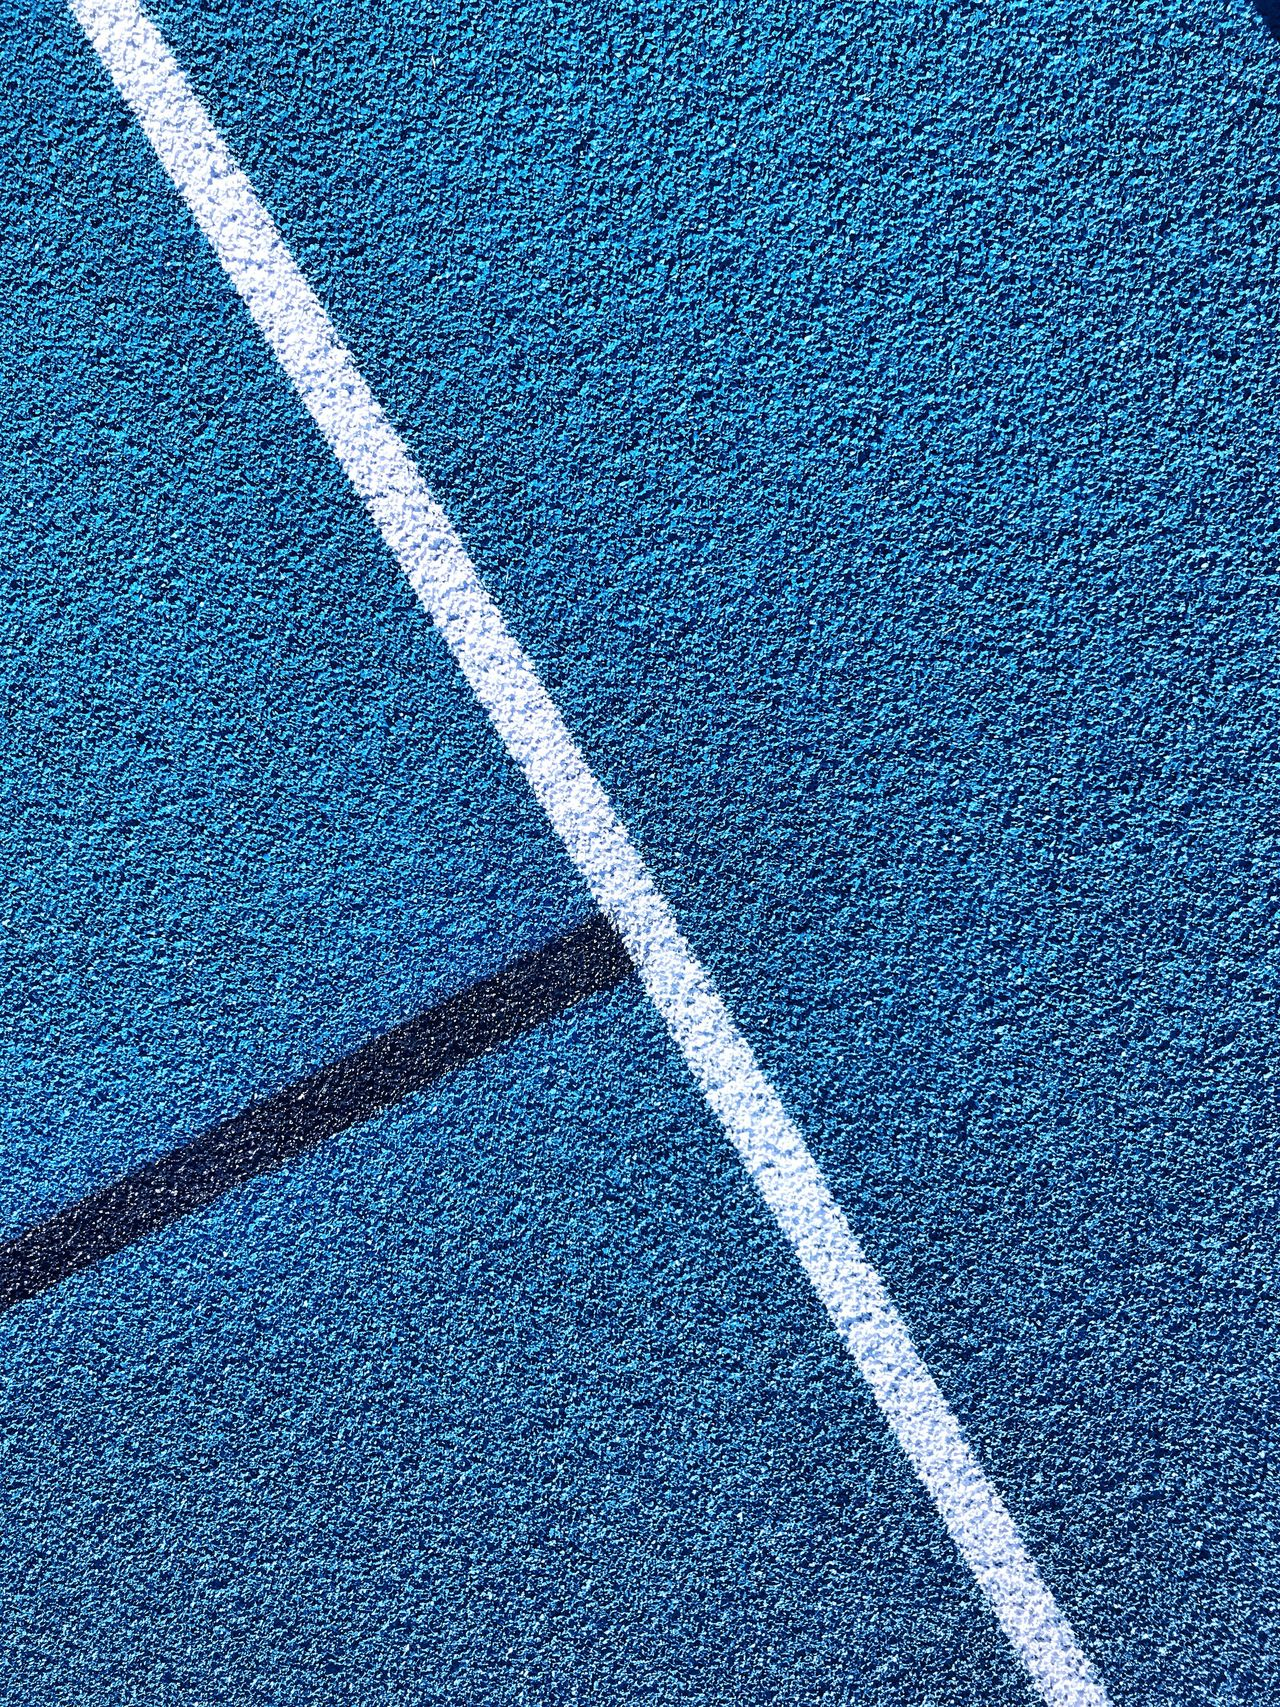 Backgrounds Pattern Full Frame Day Textured  No People Blue Outdoors Running Track Stadium Track And Field Athletics College University Blue Color LINE Abstract Track Textured  Running Jumping Hurdles Detail Sports Dominant Color